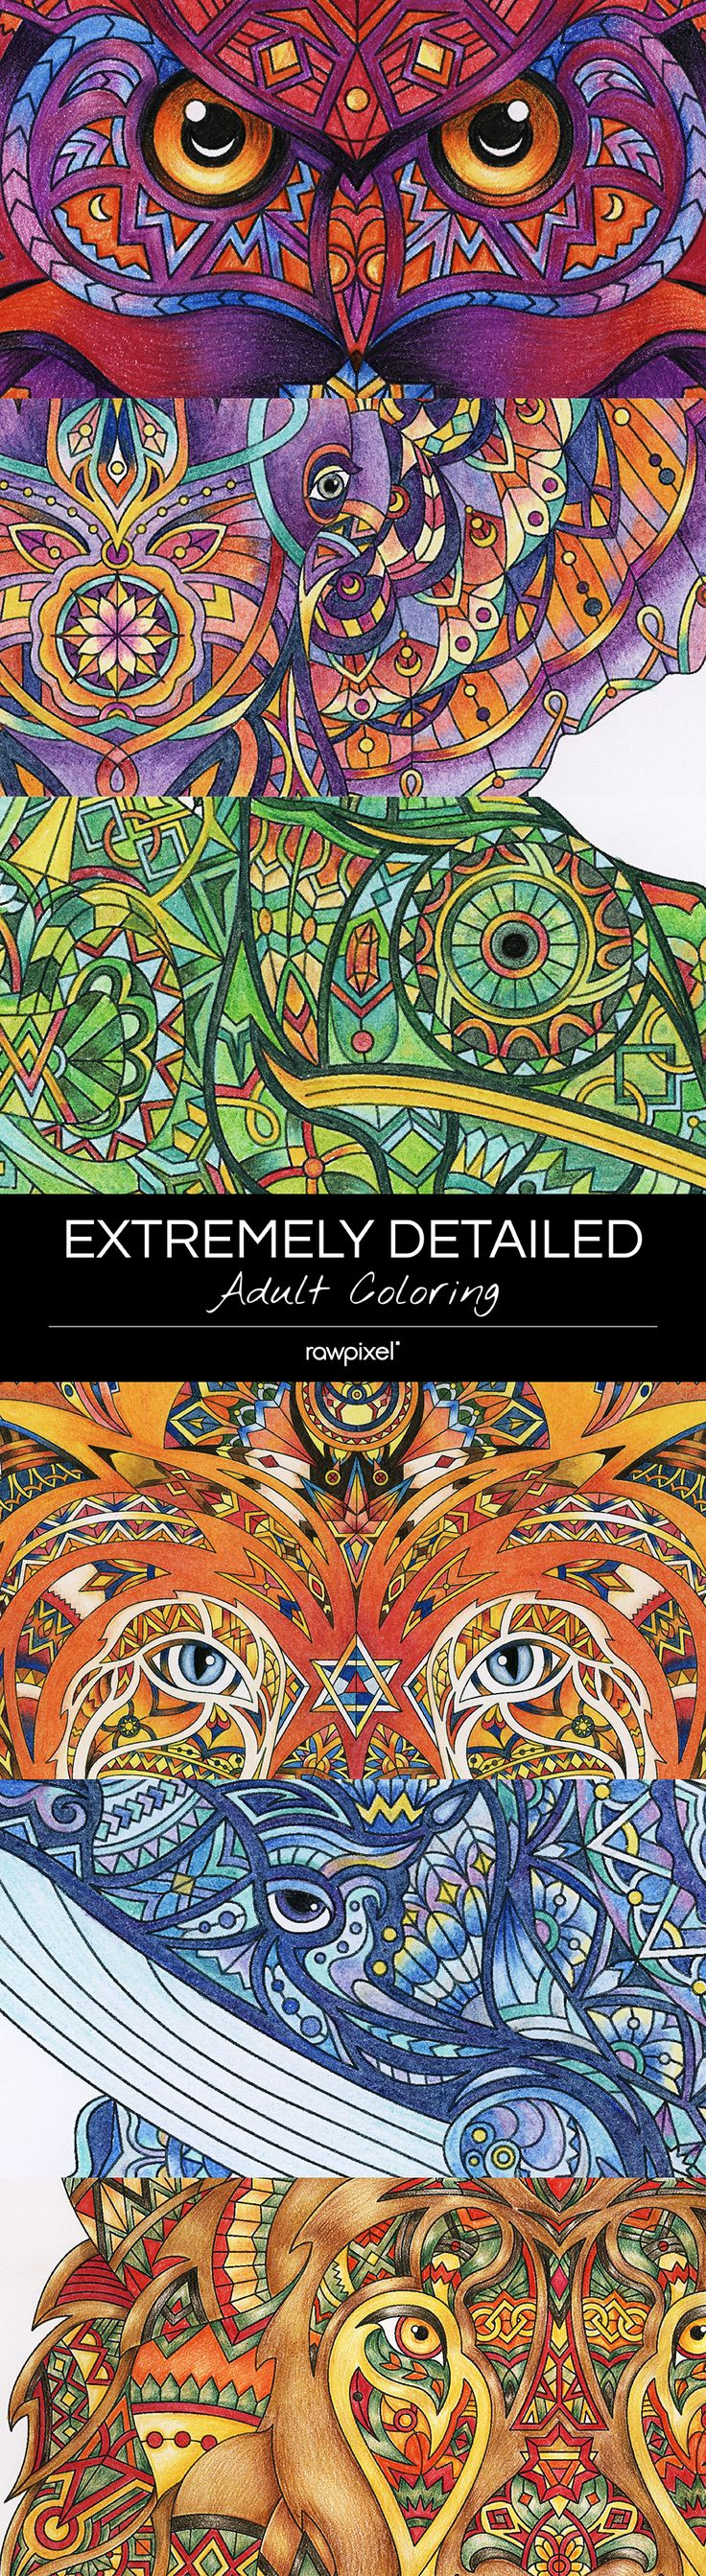 Free Download | The hardest & most detailed adult coloring pages in the world by rawpixel.com Try it and let us know what yours look like! #adultcoloring #coloringpages #adultcoloringbook